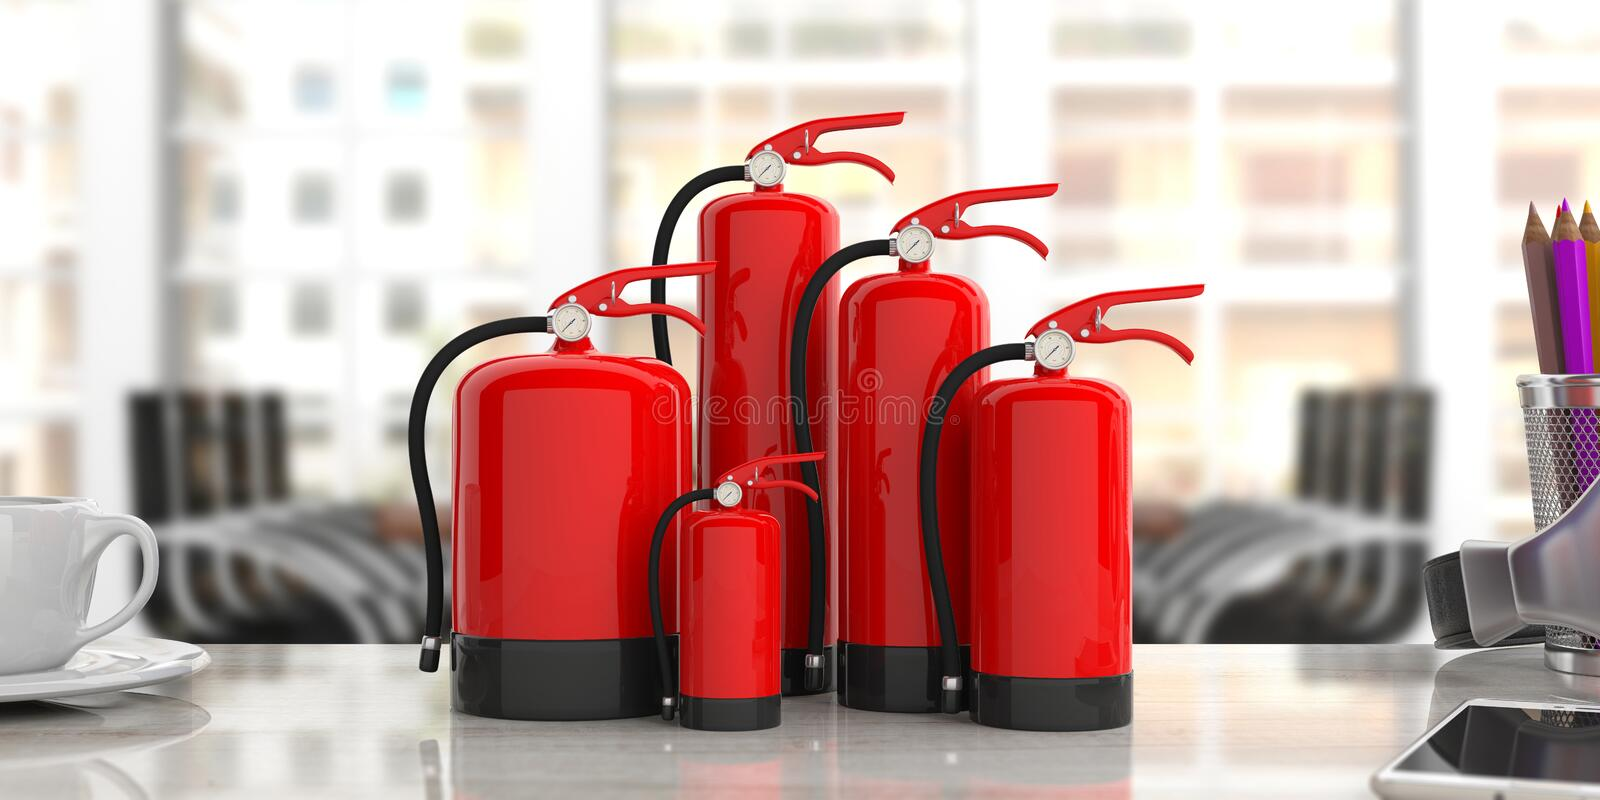 Fire extinguishers on office desk, blur business background. 3d illustration. Fire safety, Red fire extinguishers, various sizes, on office desk, blur business stock illustration